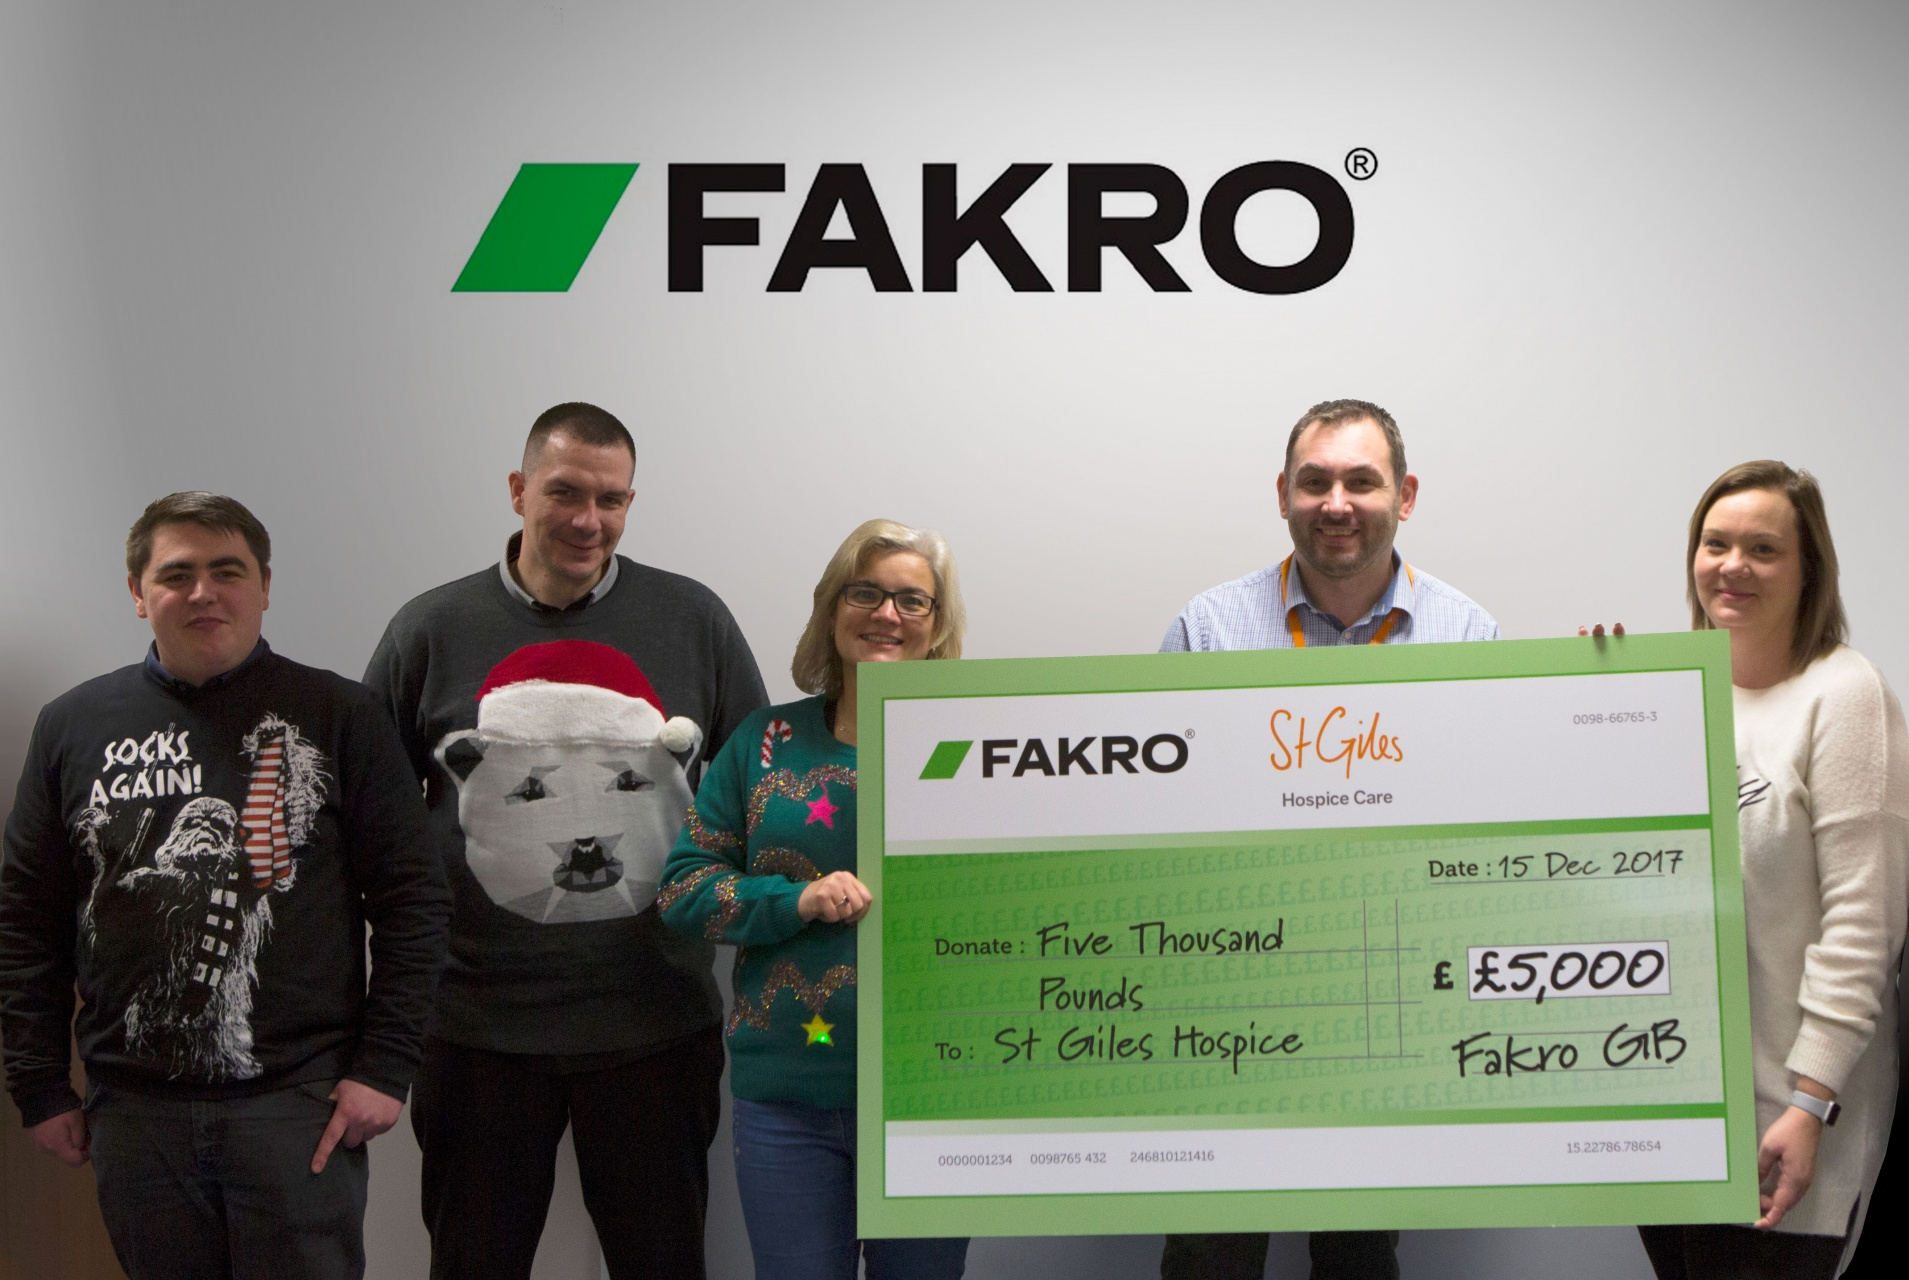 FAKRO donate to St Giles Hospice